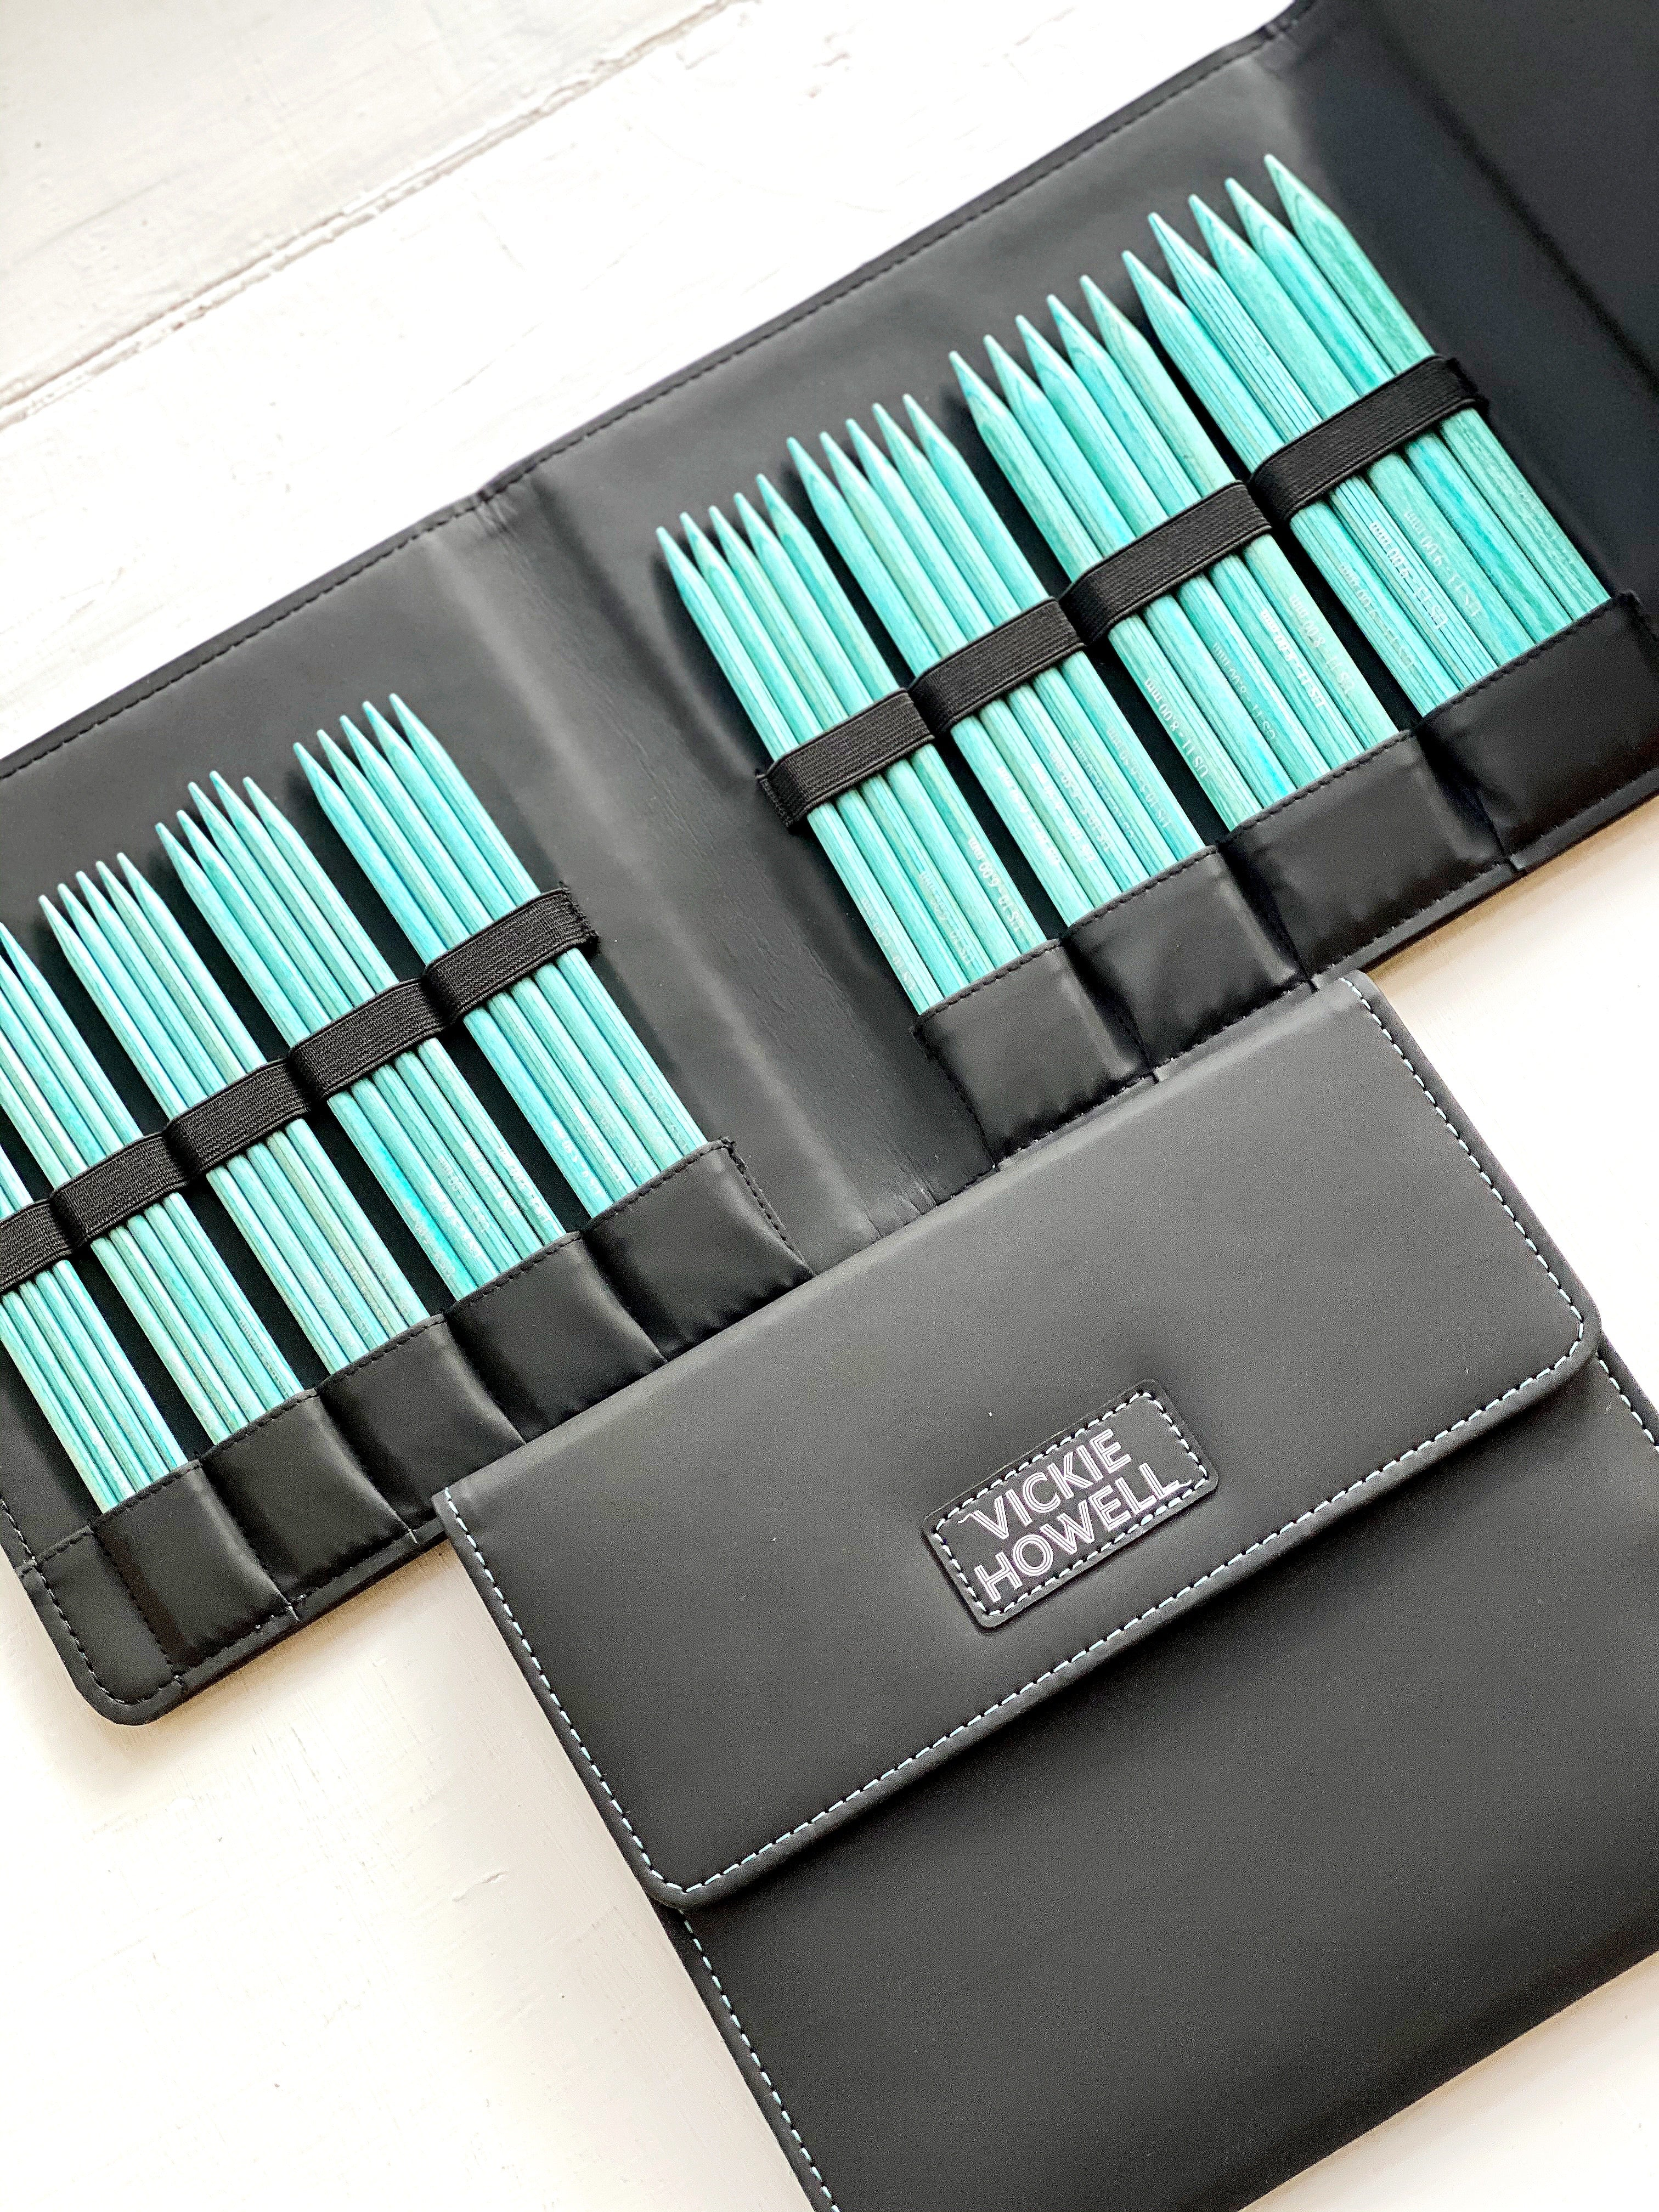 Vickie Howell Aqua Wood Double-Pointed Knitting Needle Set